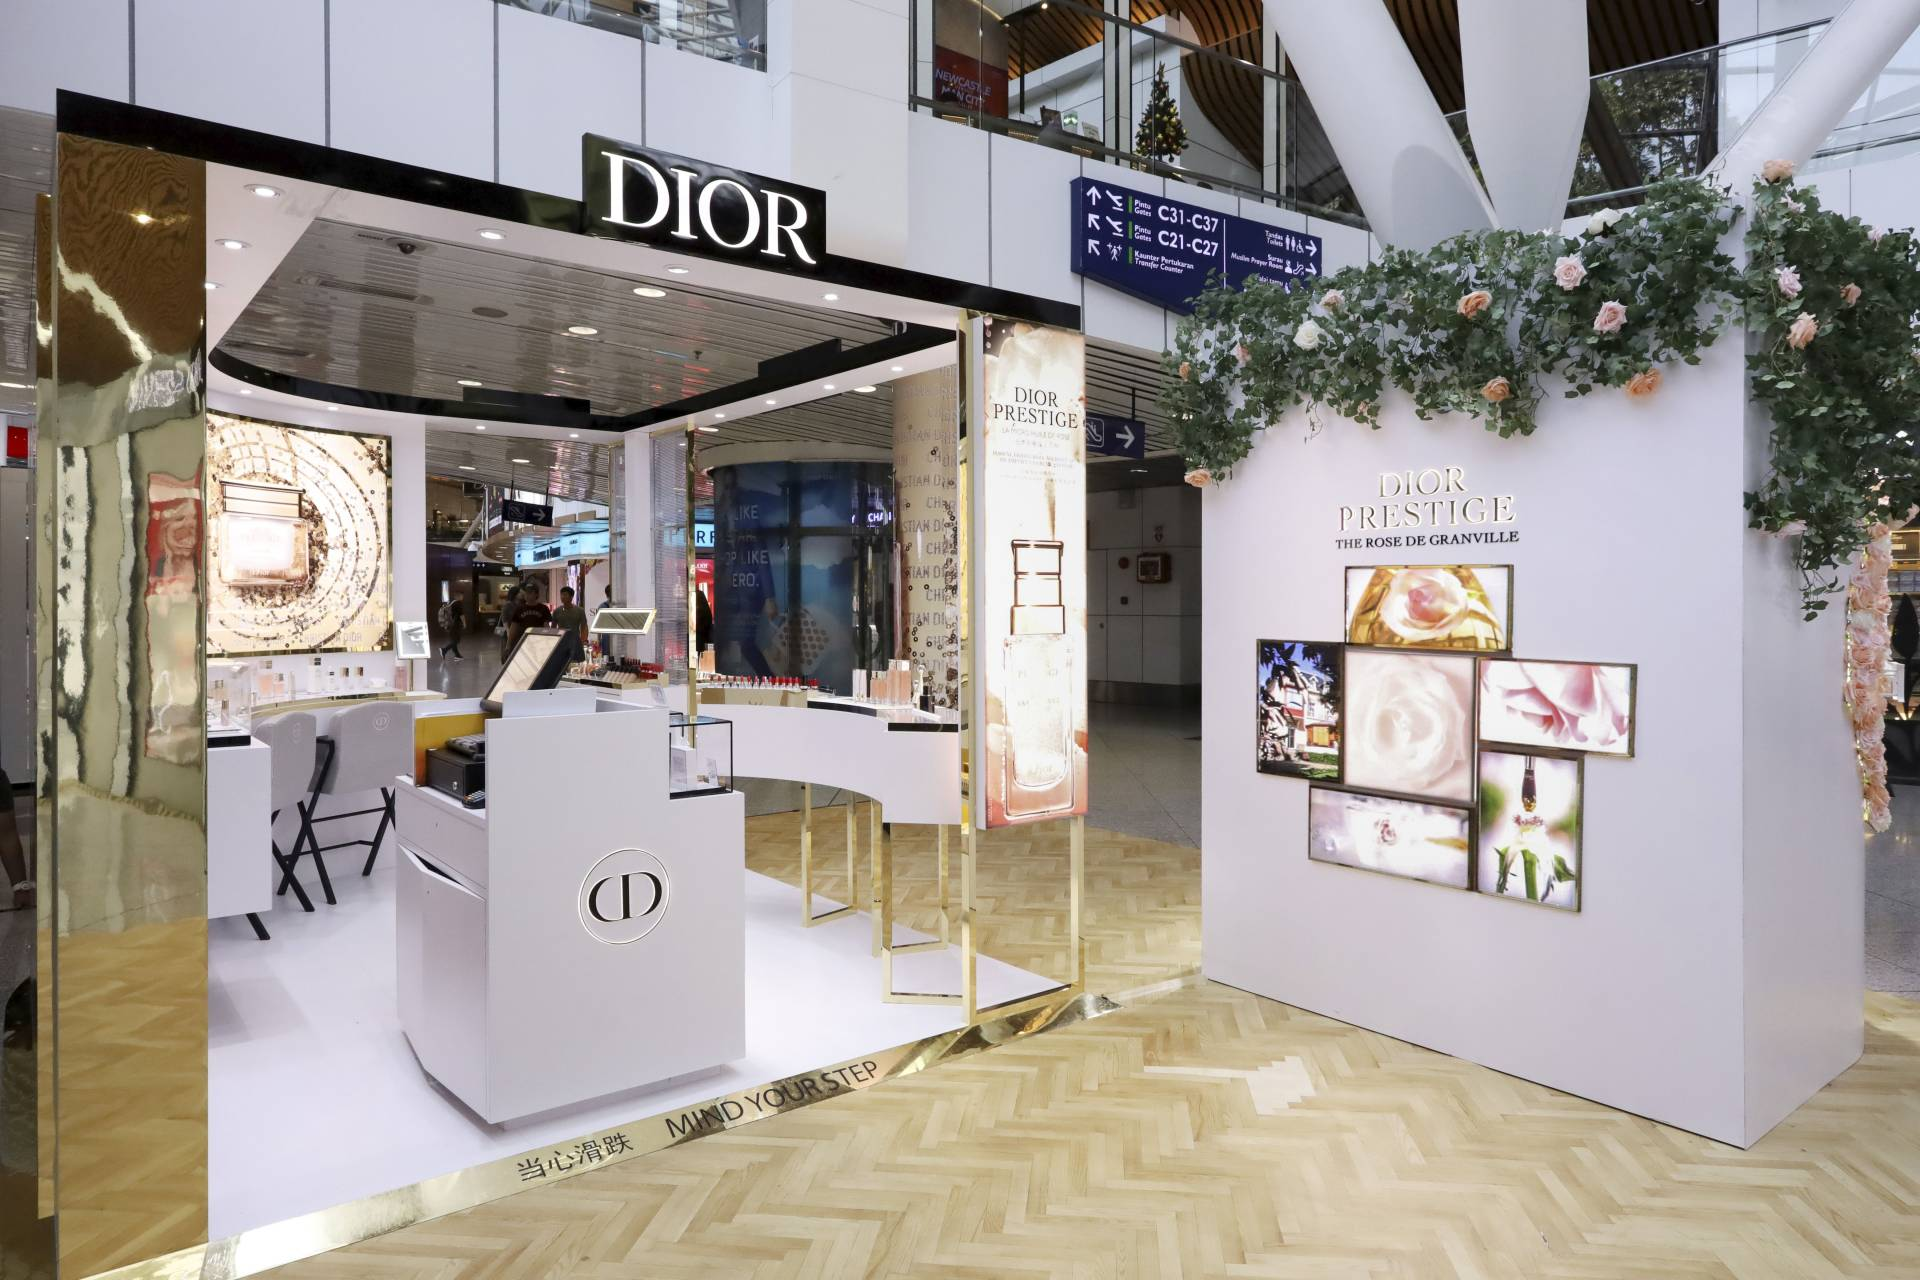 The Dior Prestige pop-up boutique at KLIA is the brand's first such store in a South-East Asia airport. - DR Group